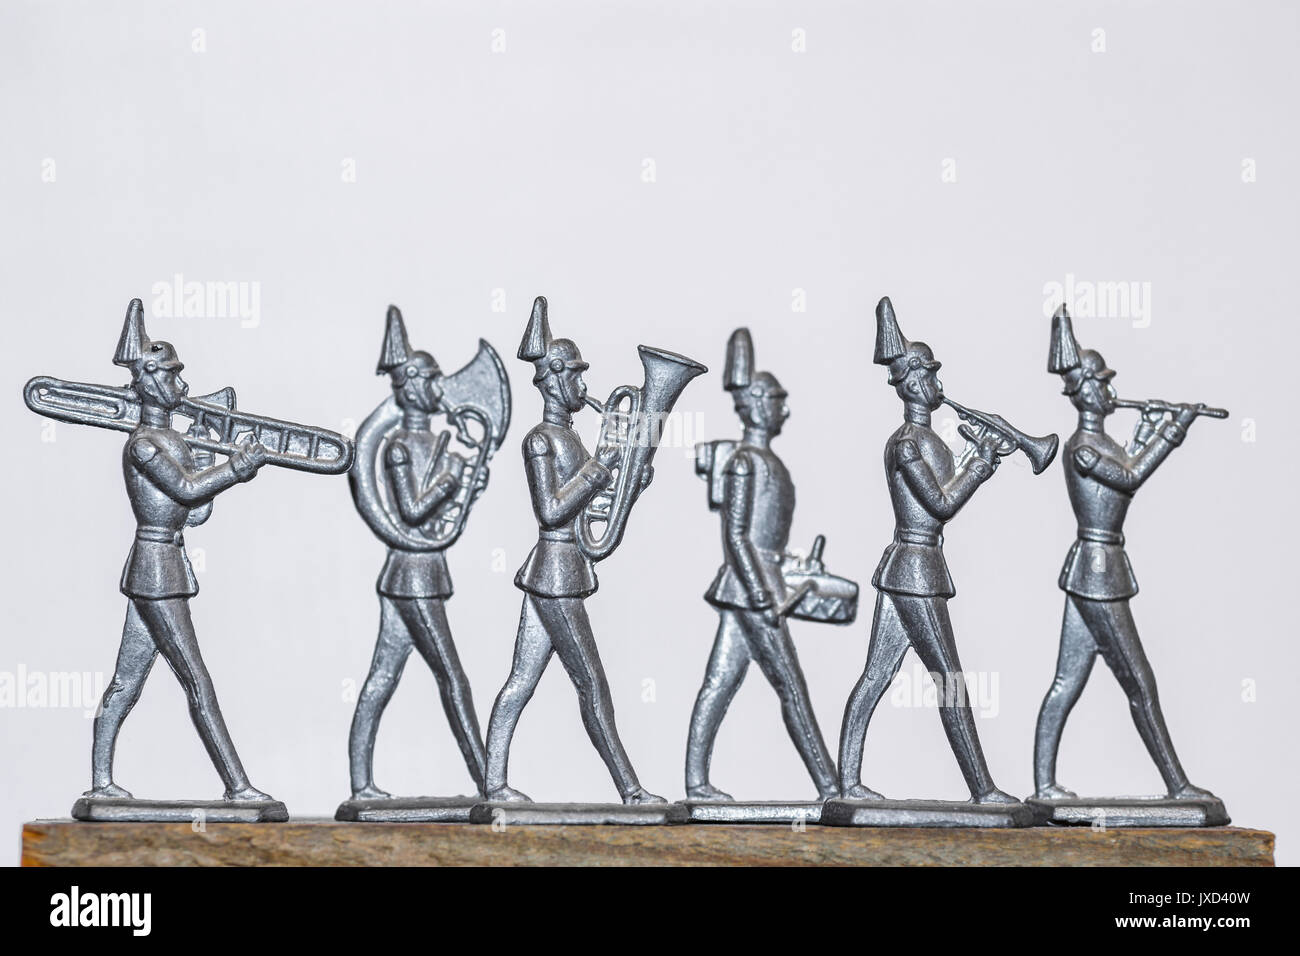 Tin soldier brass band parade - Stock Image